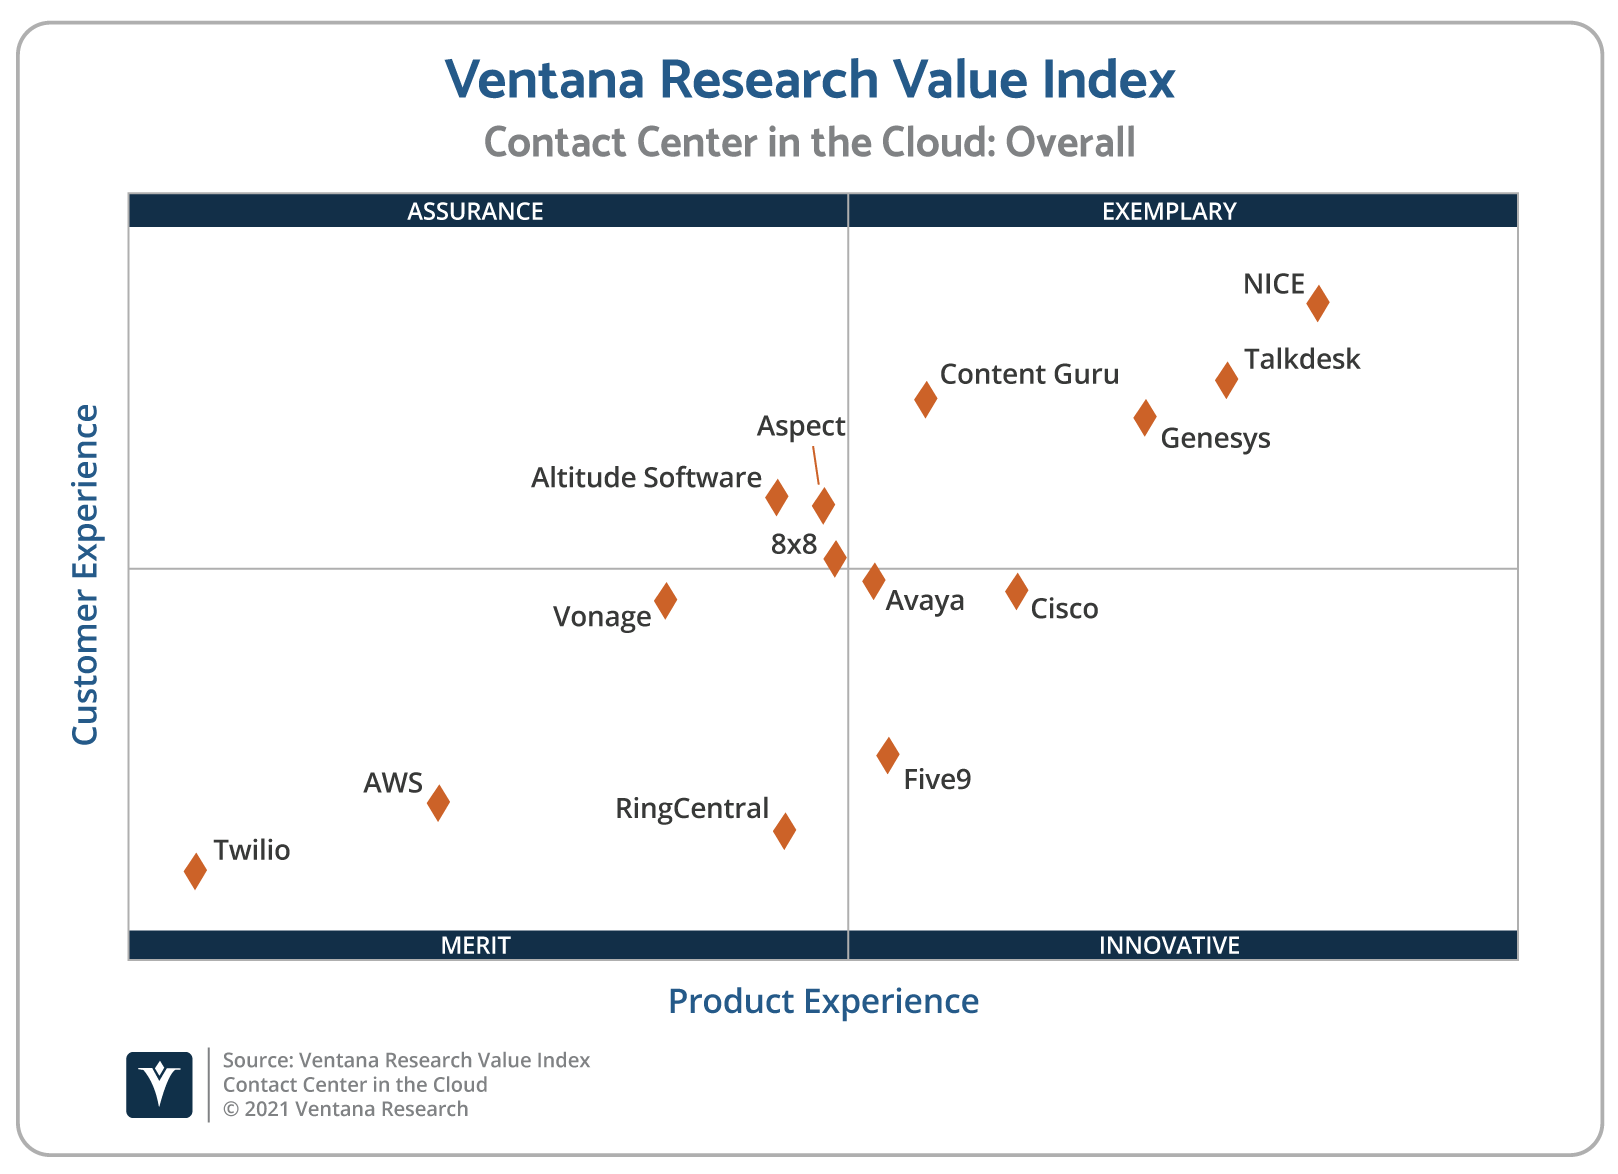 Ventana_Research_Value_Index_Contact_Center_in_the_Cloud_2021_Scatter (1)